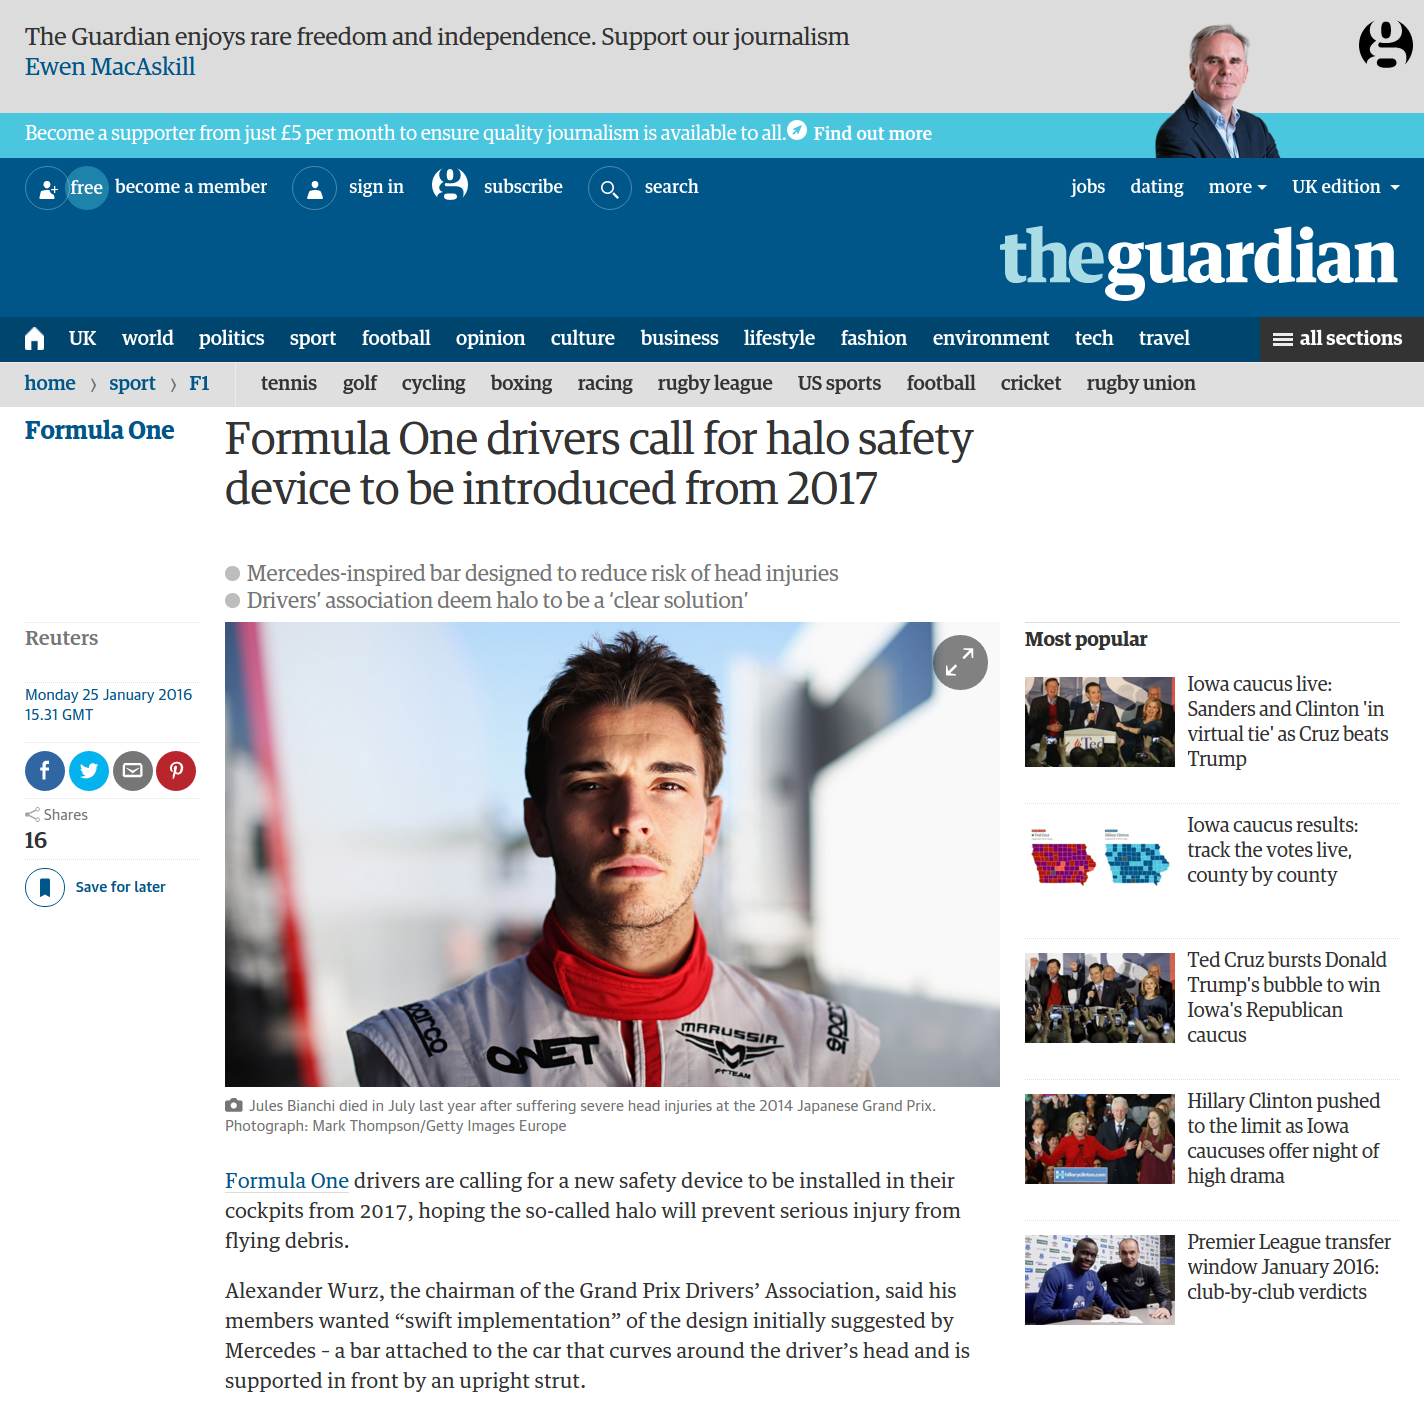 The Guardian website uses AngularJS